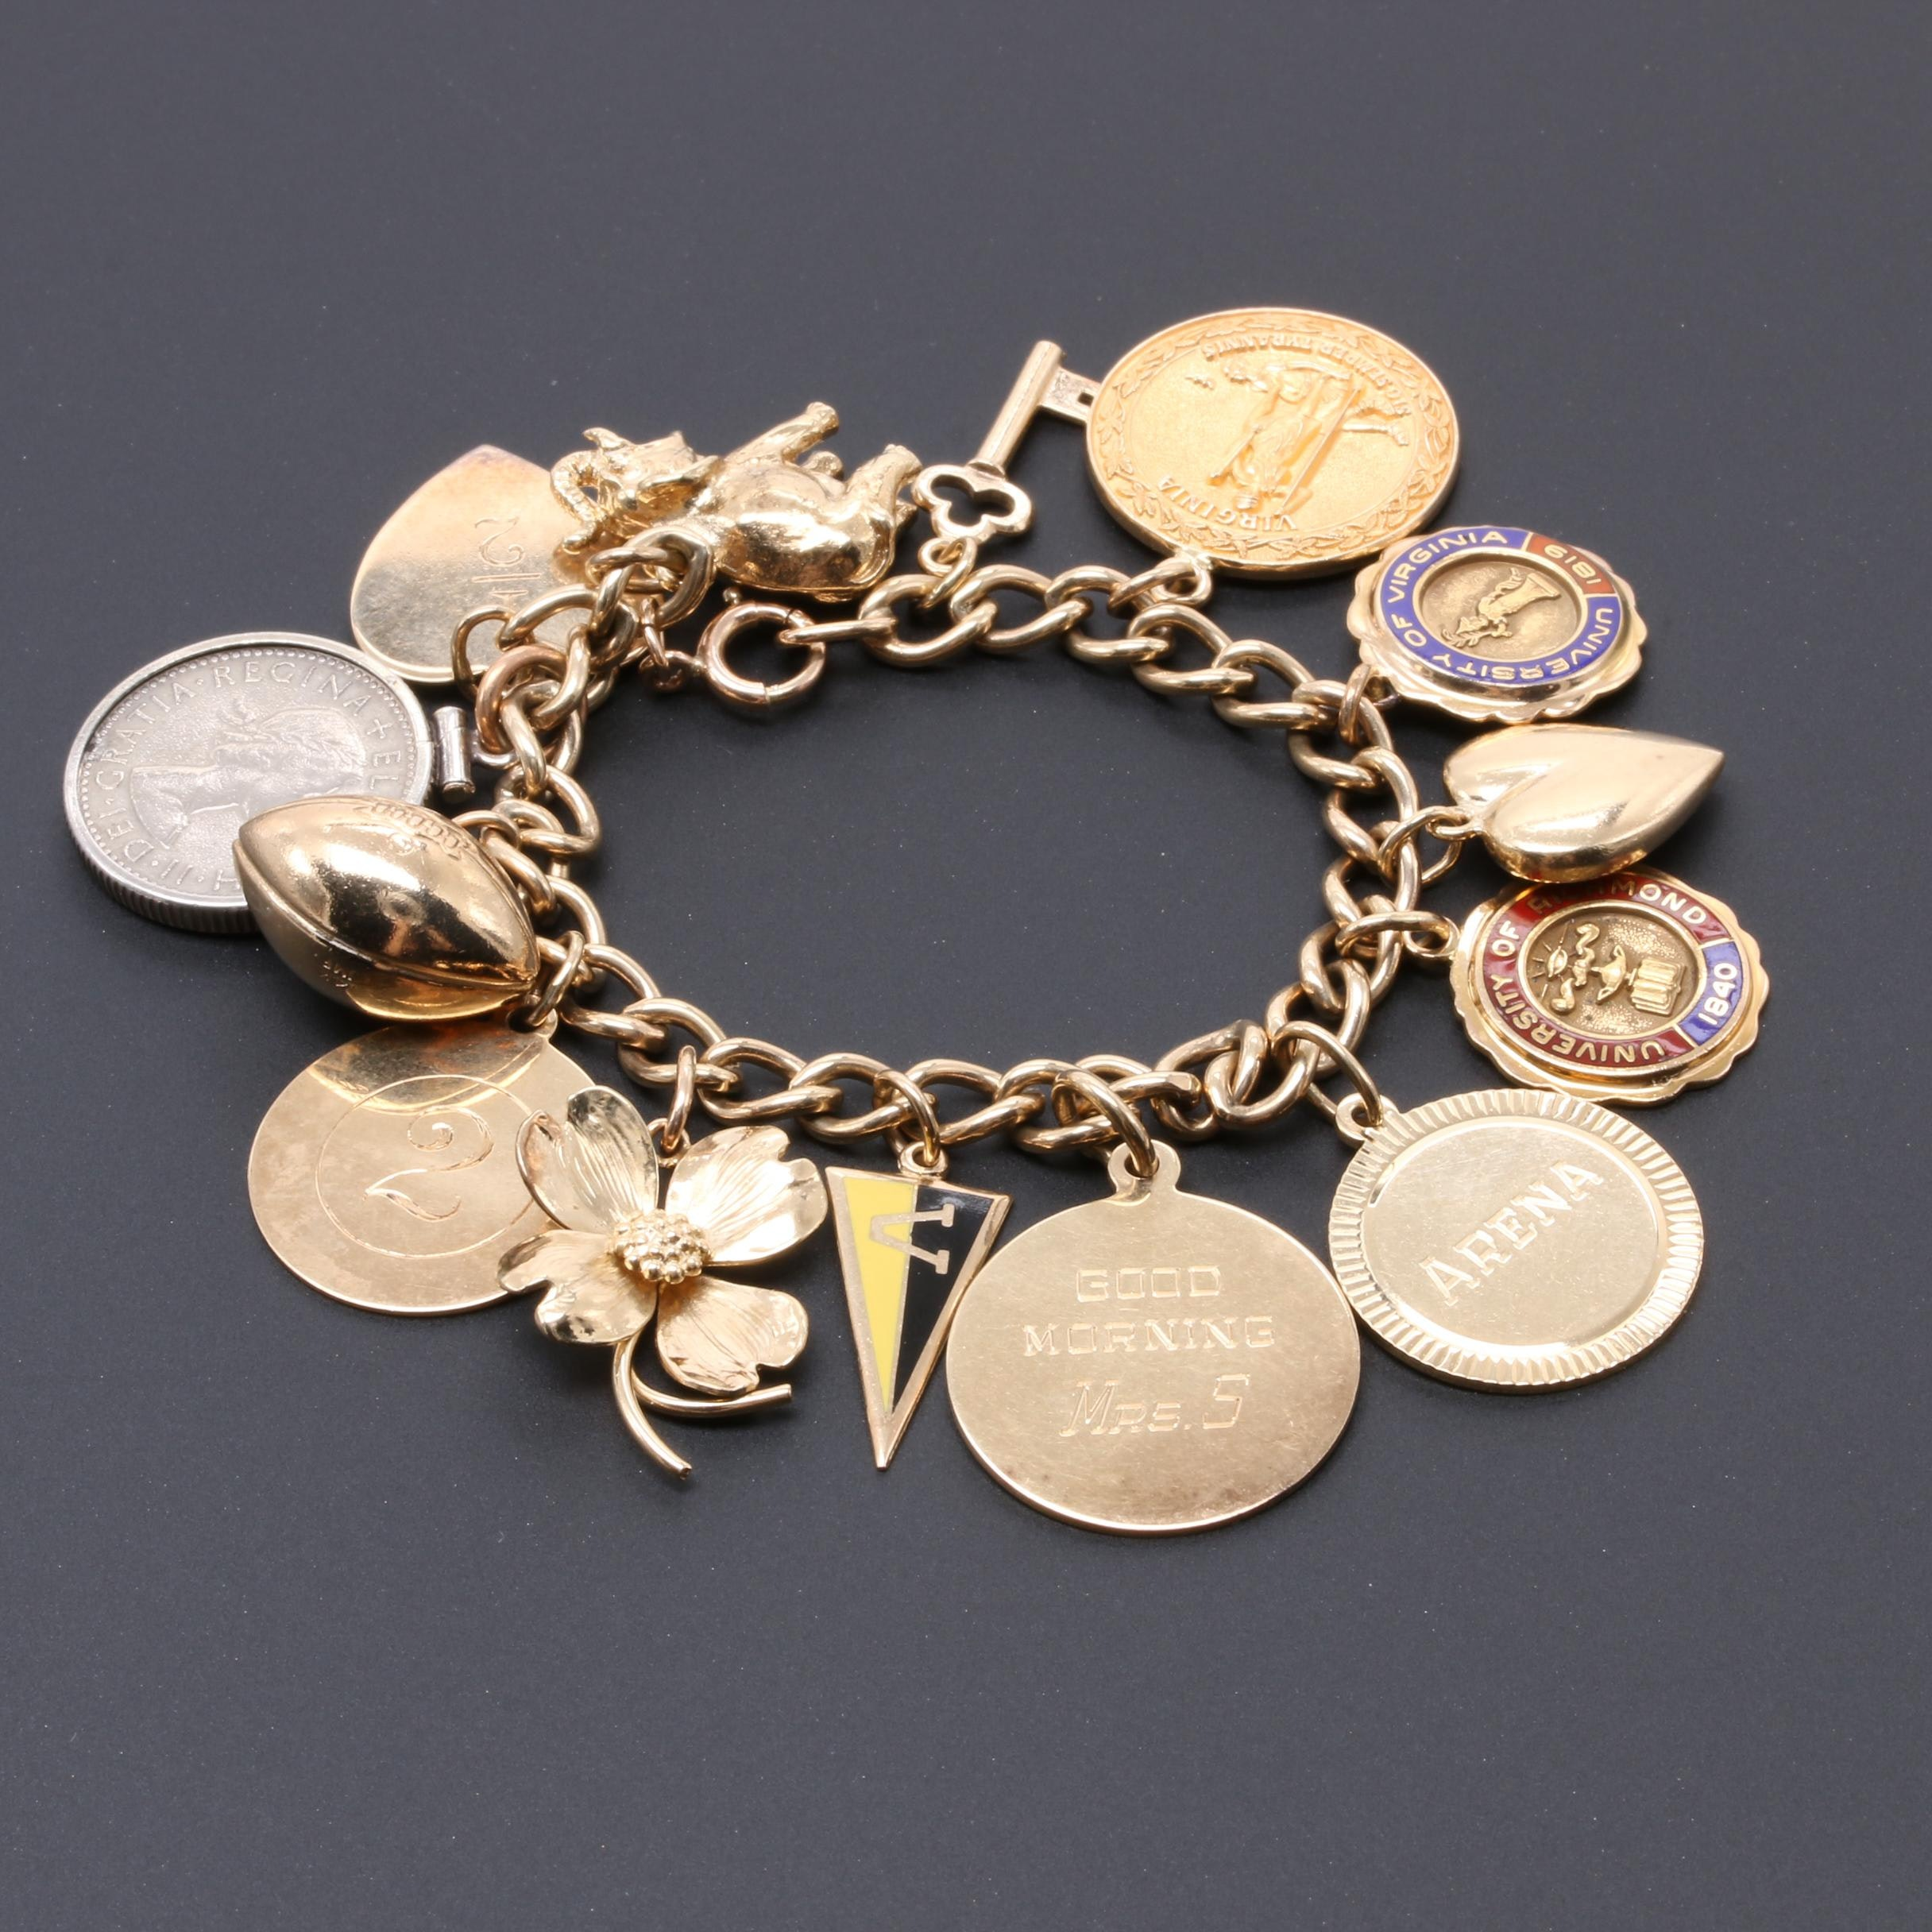 10K Yellow Gold Bracelet with 14K Charms Including Enamel